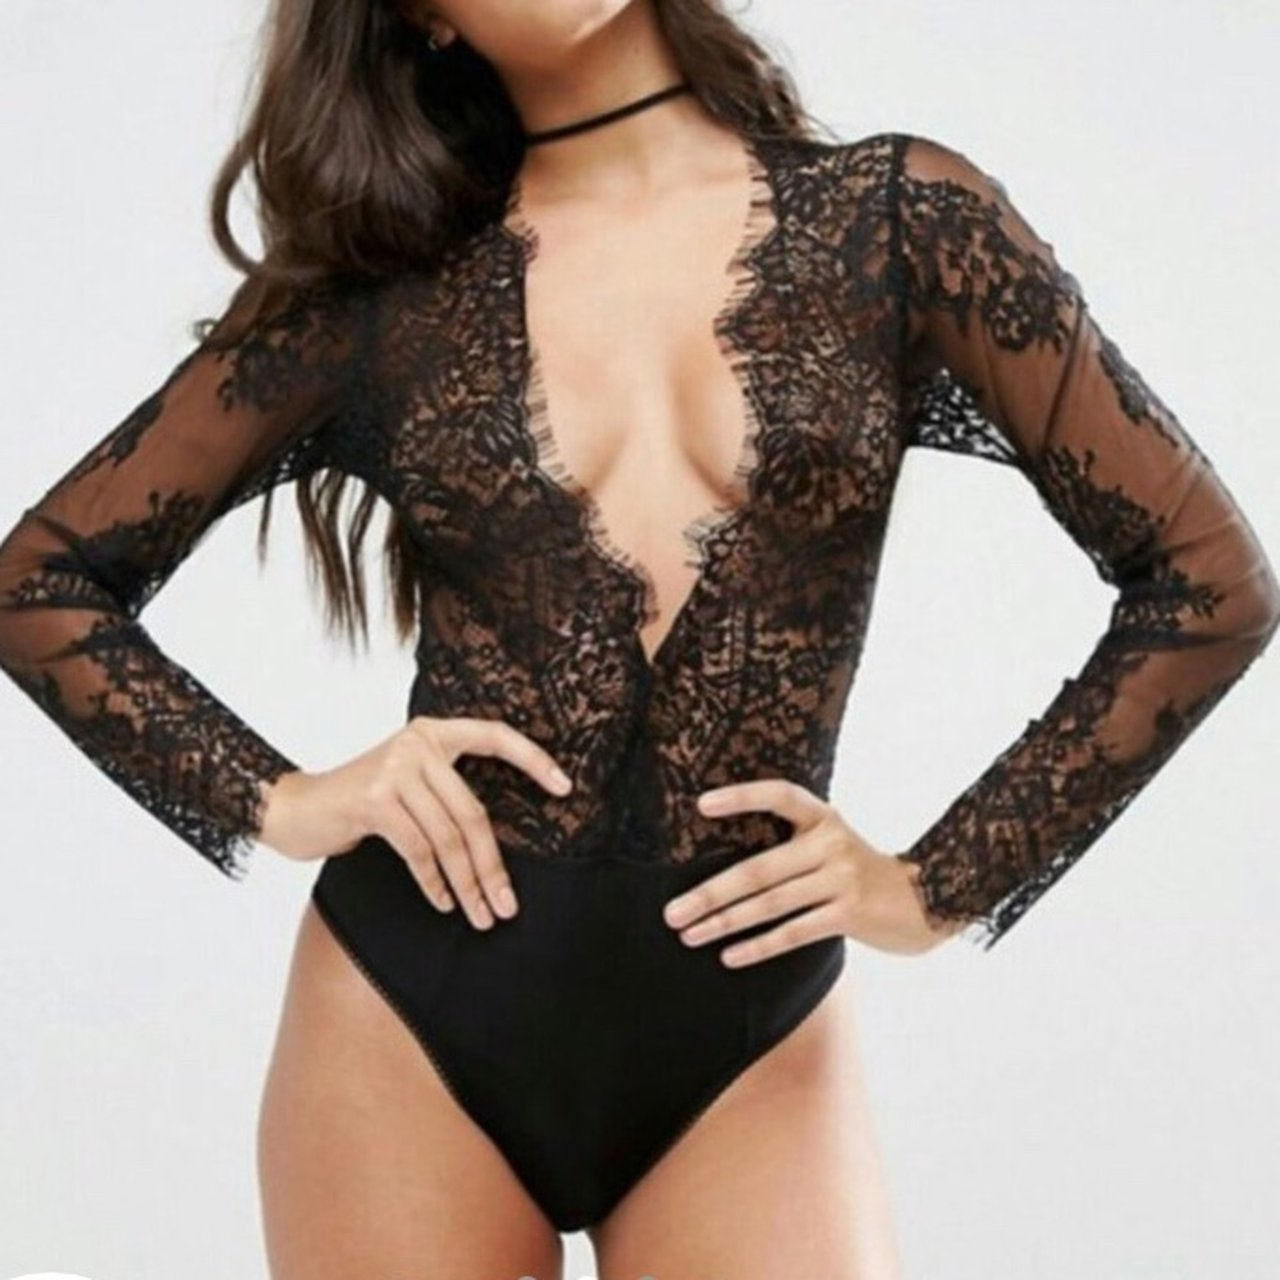 77751dd119de @franbradshaw2. last year. Nottingham, United Kingdom. Asos Black lace  bodysuit ...